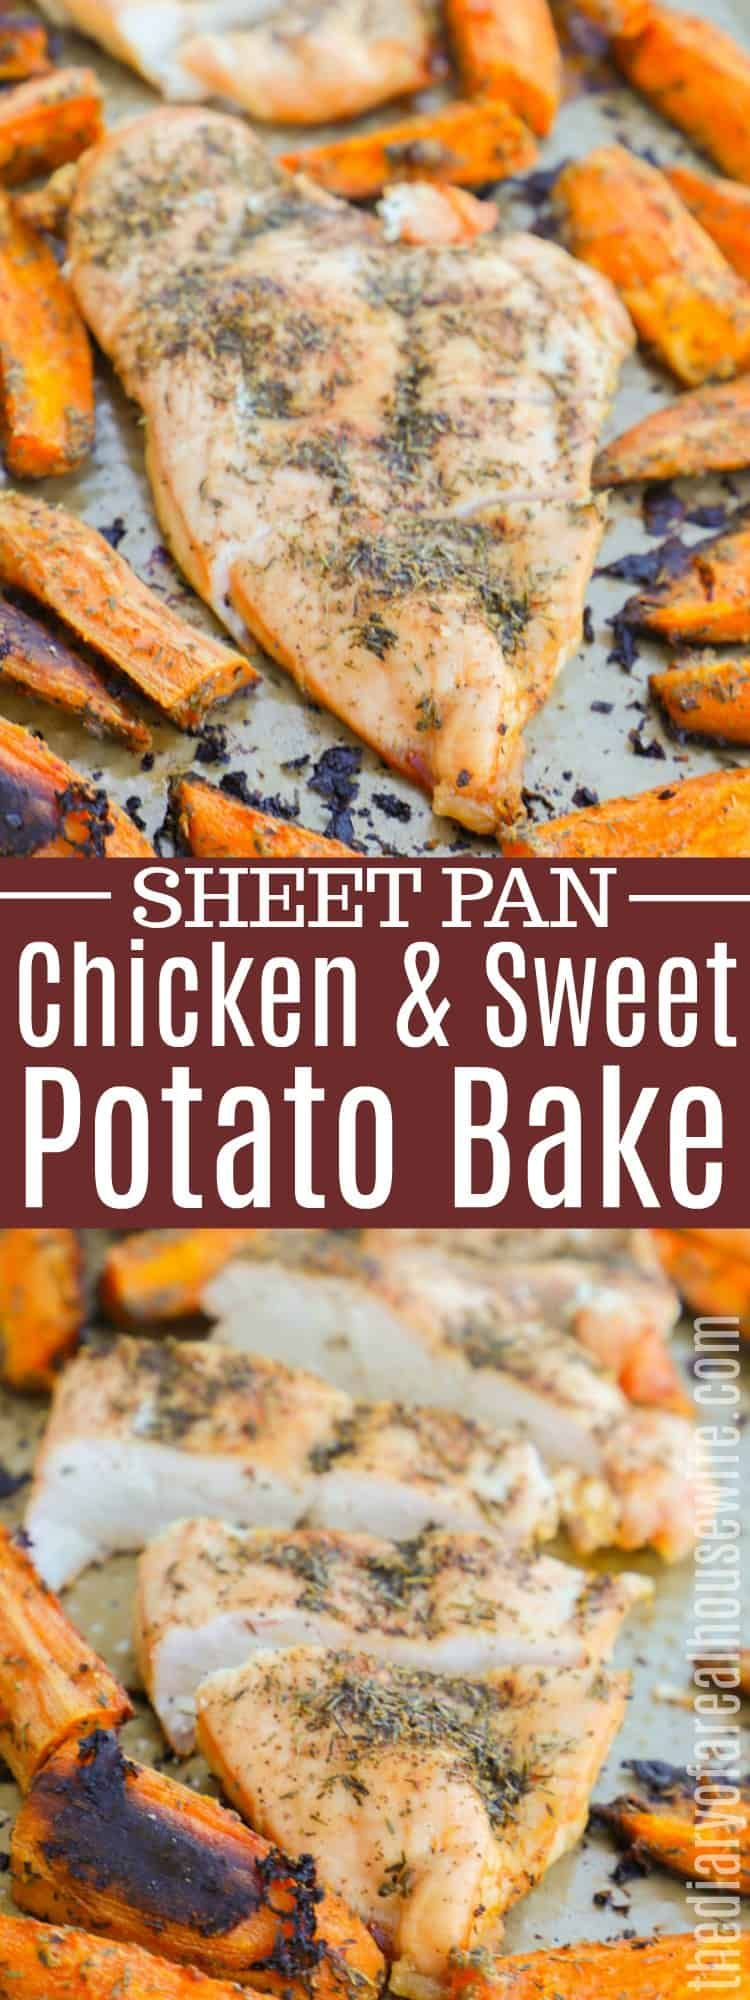 One Pan Chicken and Sweet Potato Bake #onepanchicken